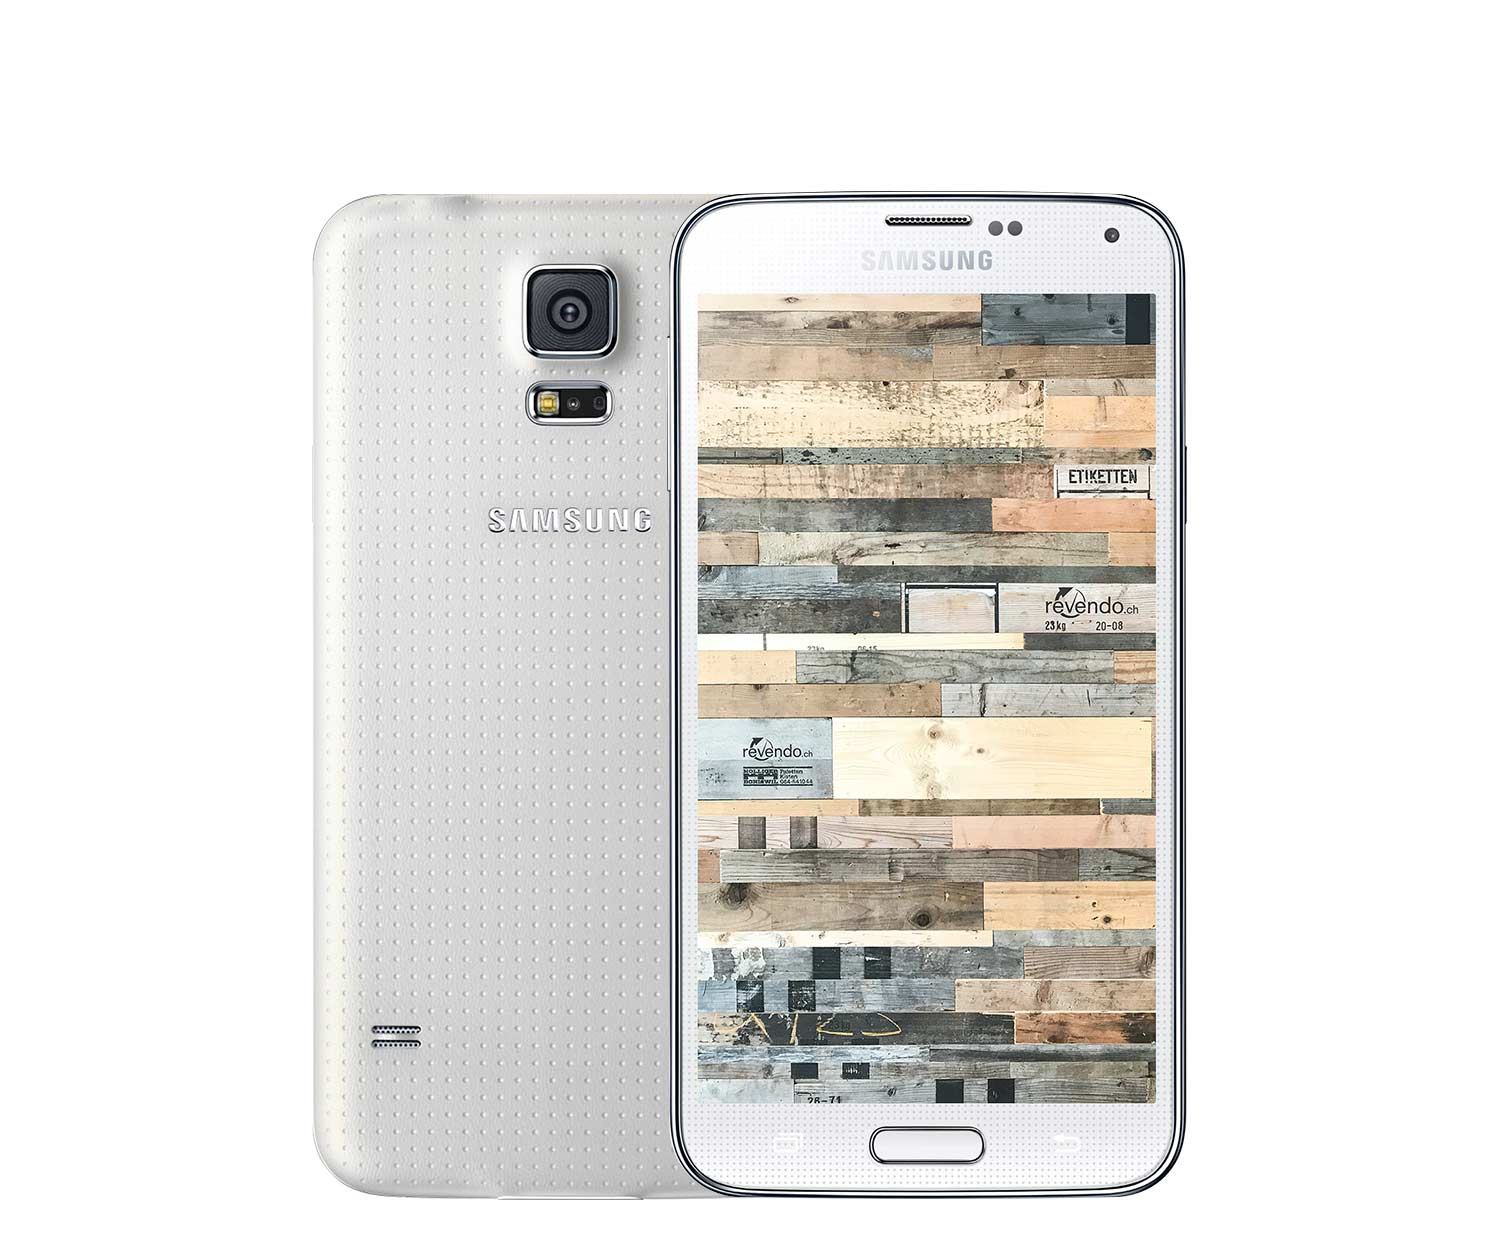 samsung galaxy s5 16 gb weiss. Black Bedroom Furniture Sets. Home Design Ideas